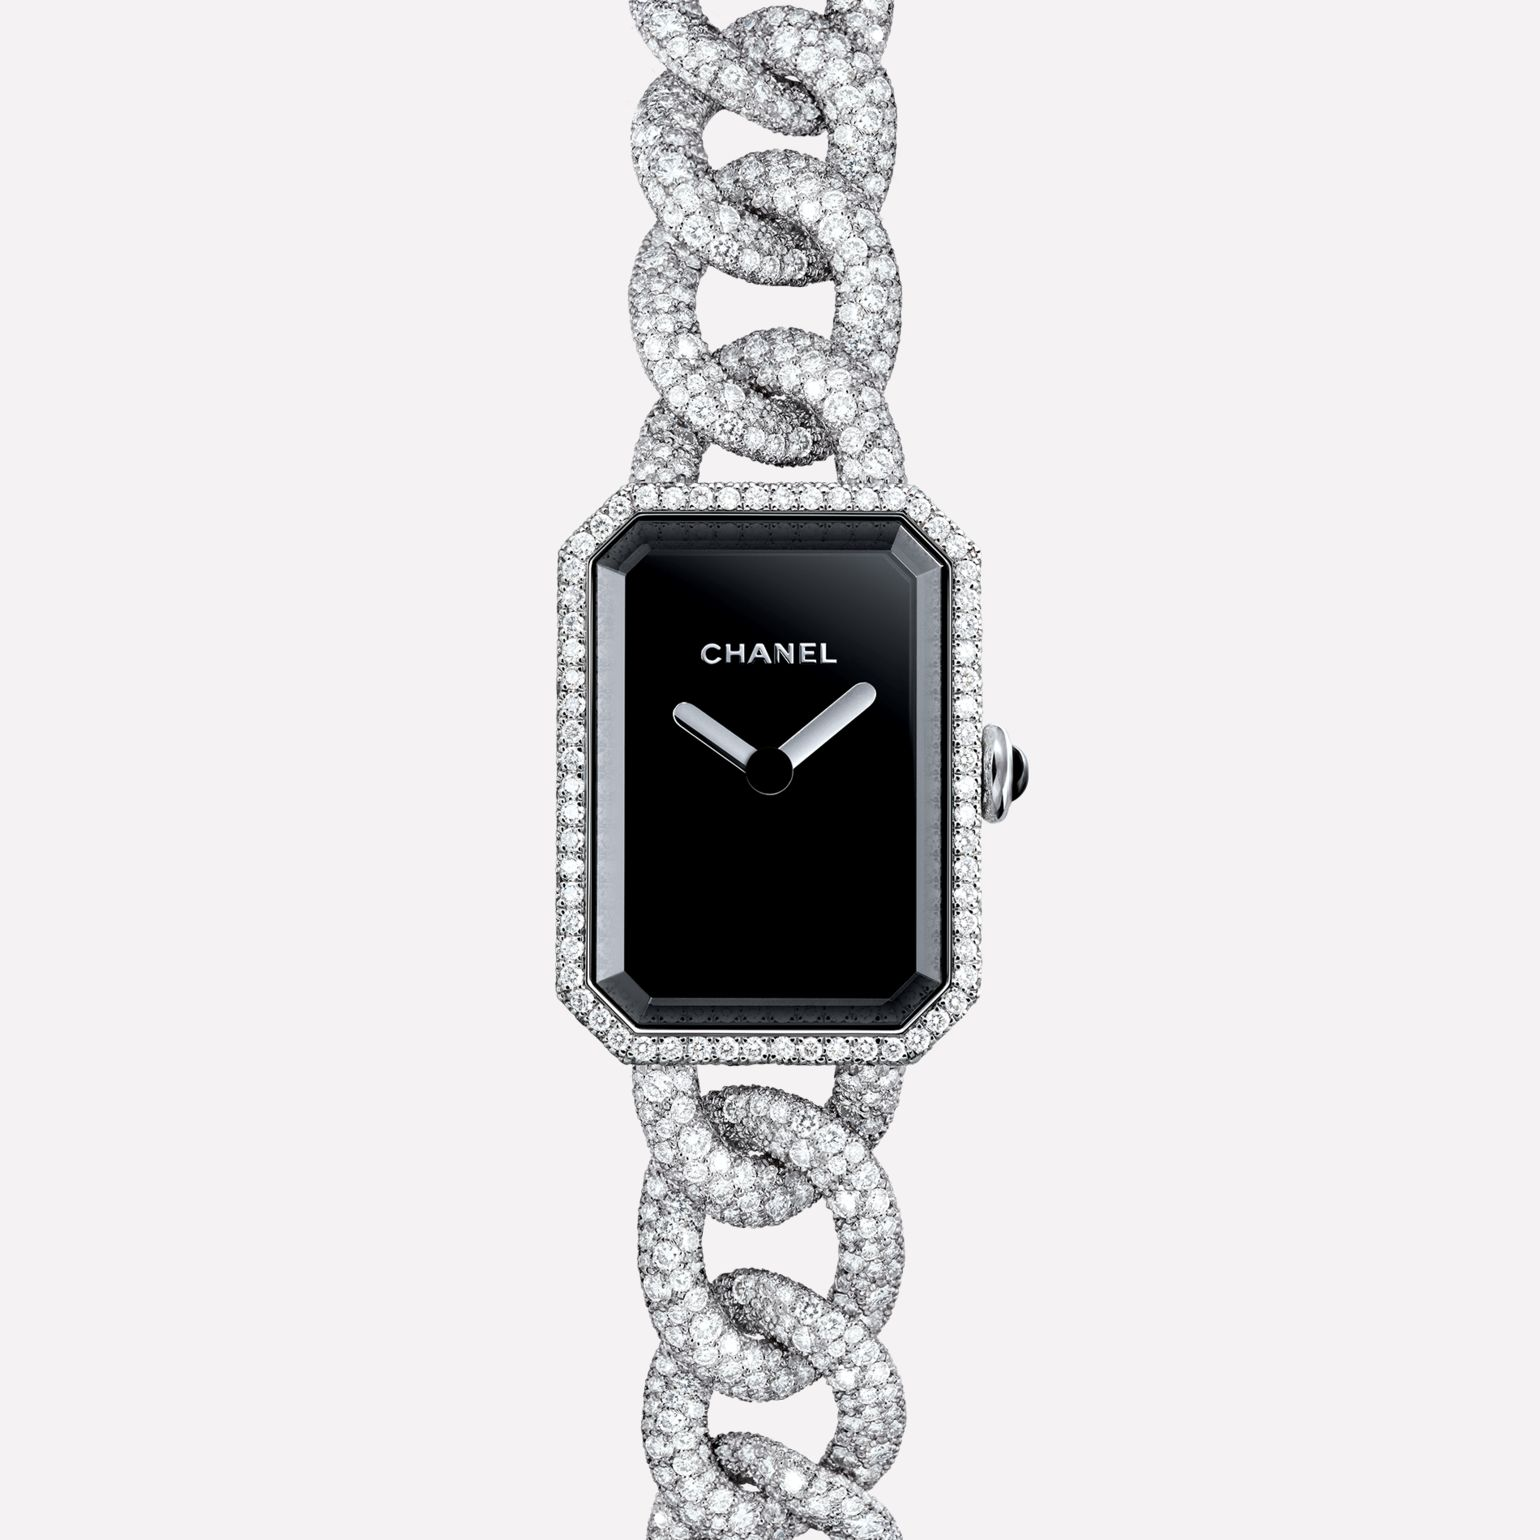 Première Jewelry Watch Small version, white gold and snow set diamonds, black dial